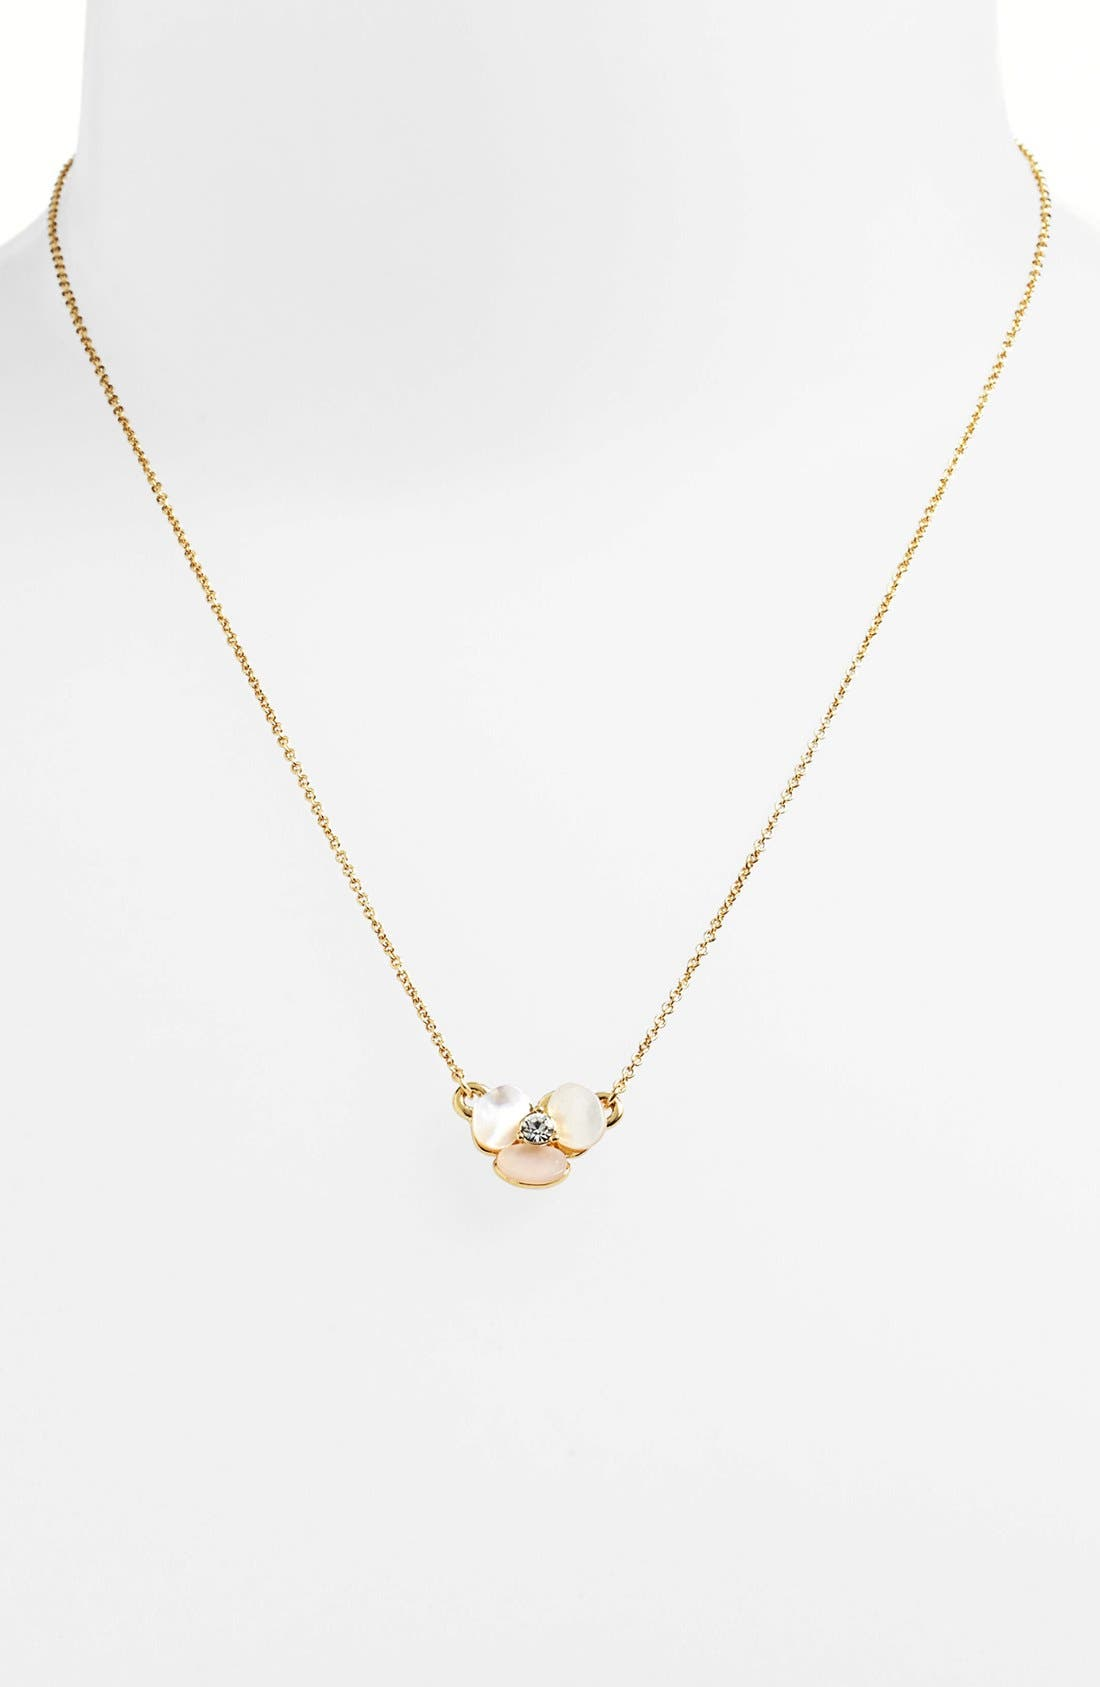 KATE SPADE NEW YORK, 'disco pansy' pendant necklace, Main thumbnail 1, color, CREAM/ CLEAR/ GOLD